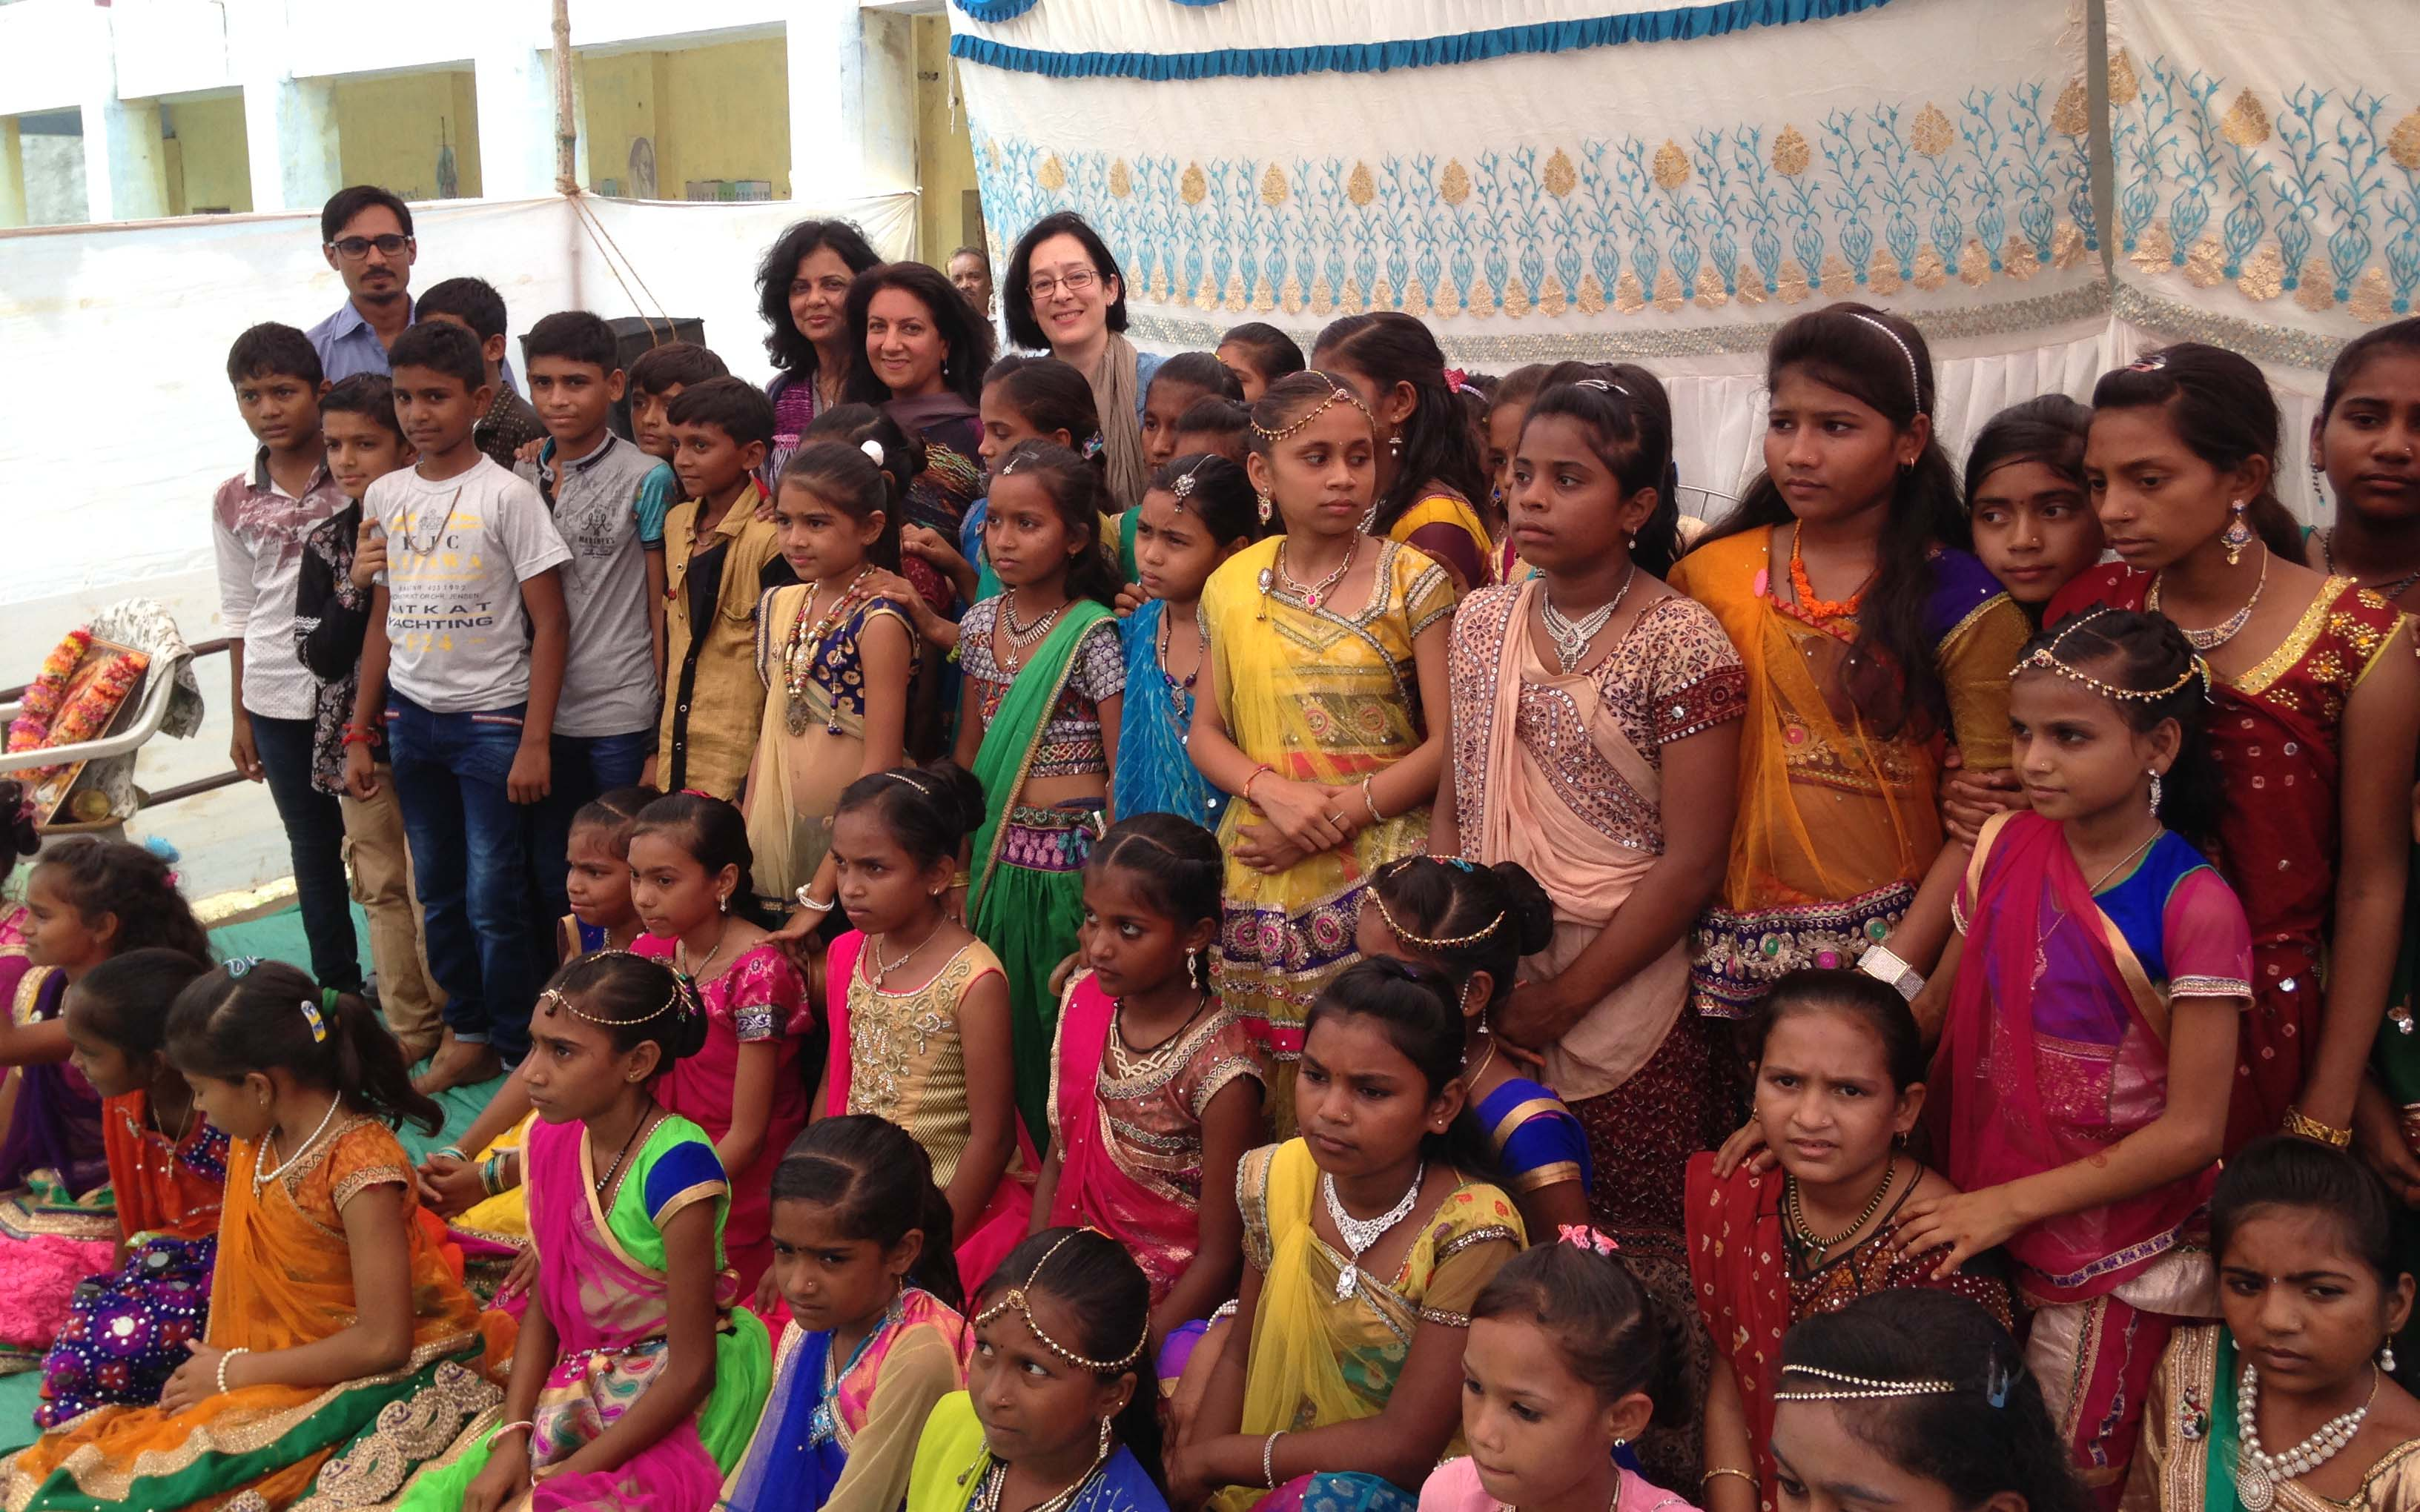 UCL academics specialising in education, engineering and child health visited villages in rural India to see how they can work with partners to improve health of the children and their families.…